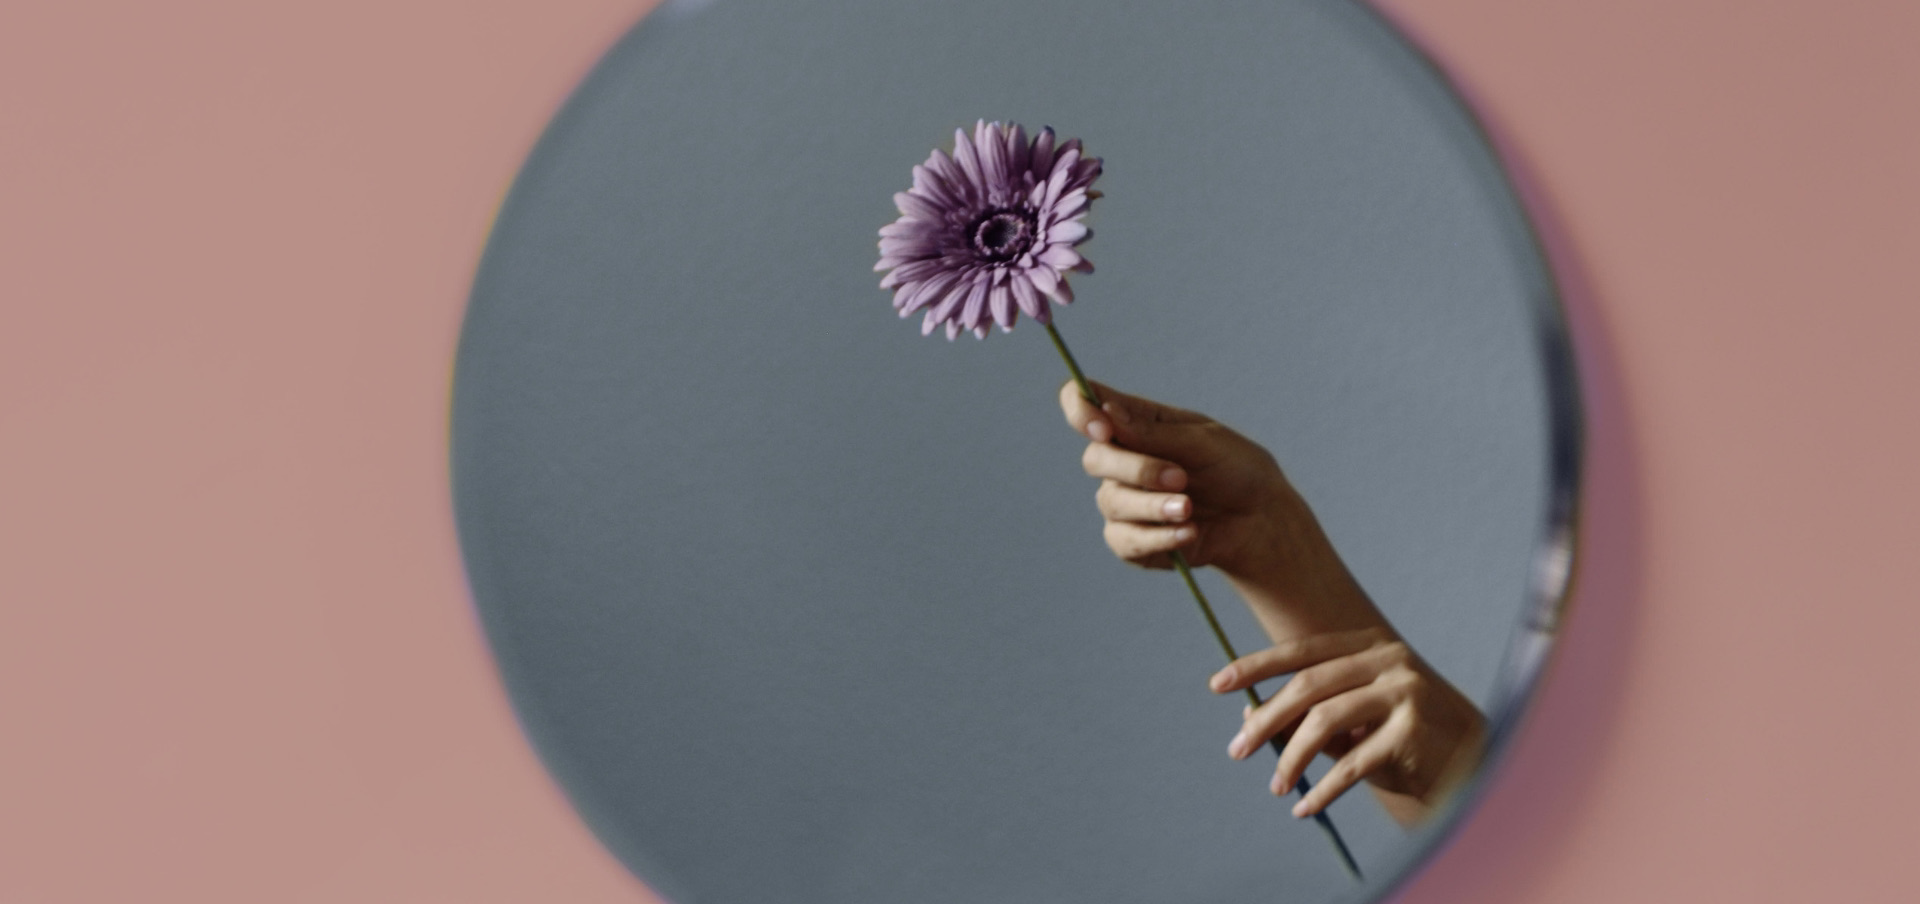 a person holding a flower and looking in the mirror